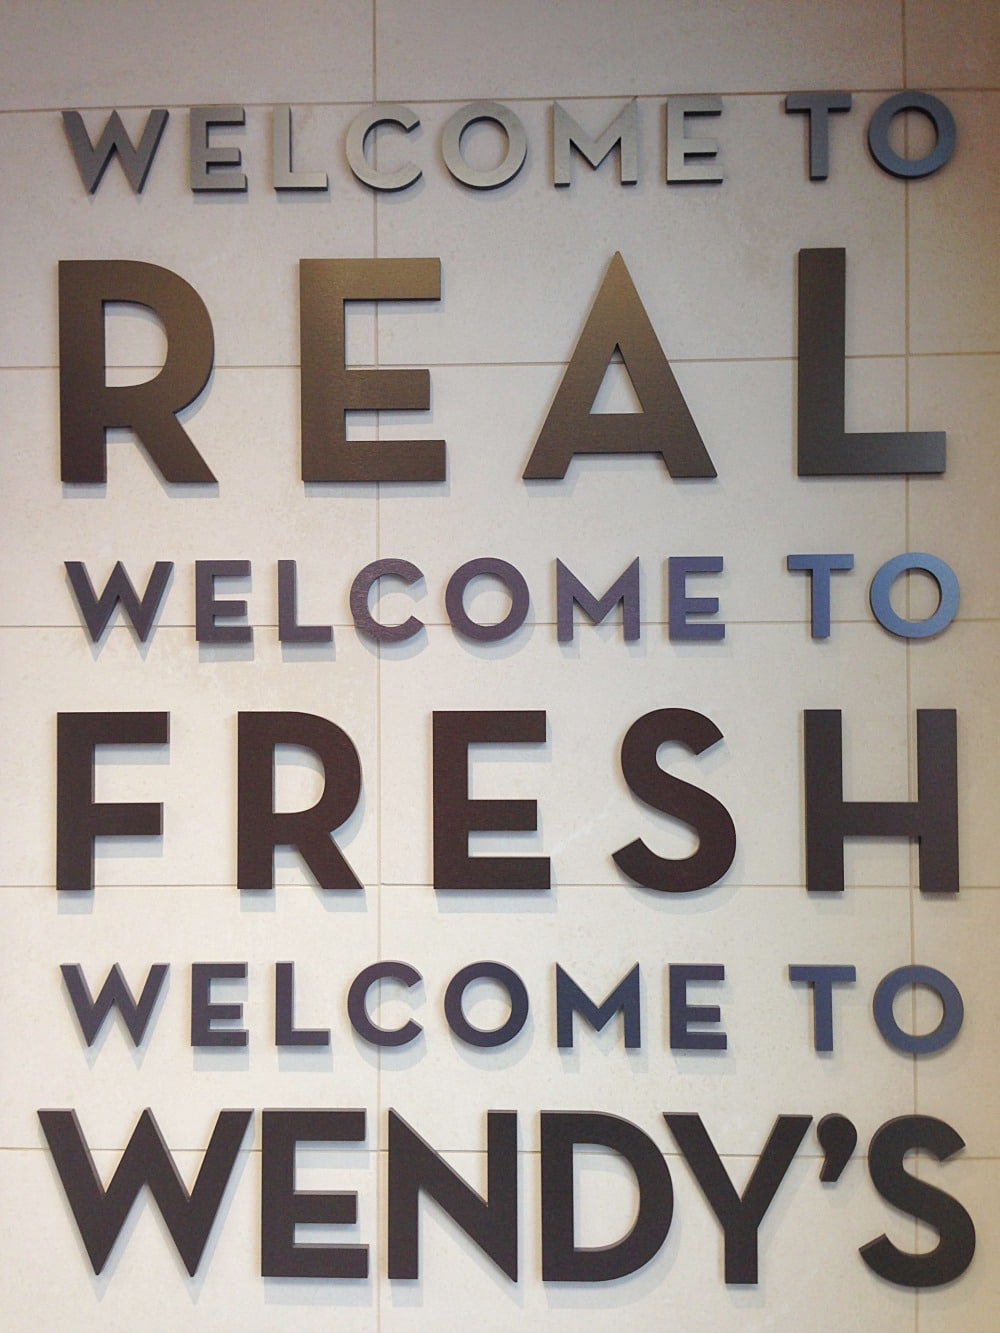 Welcome to Wendys